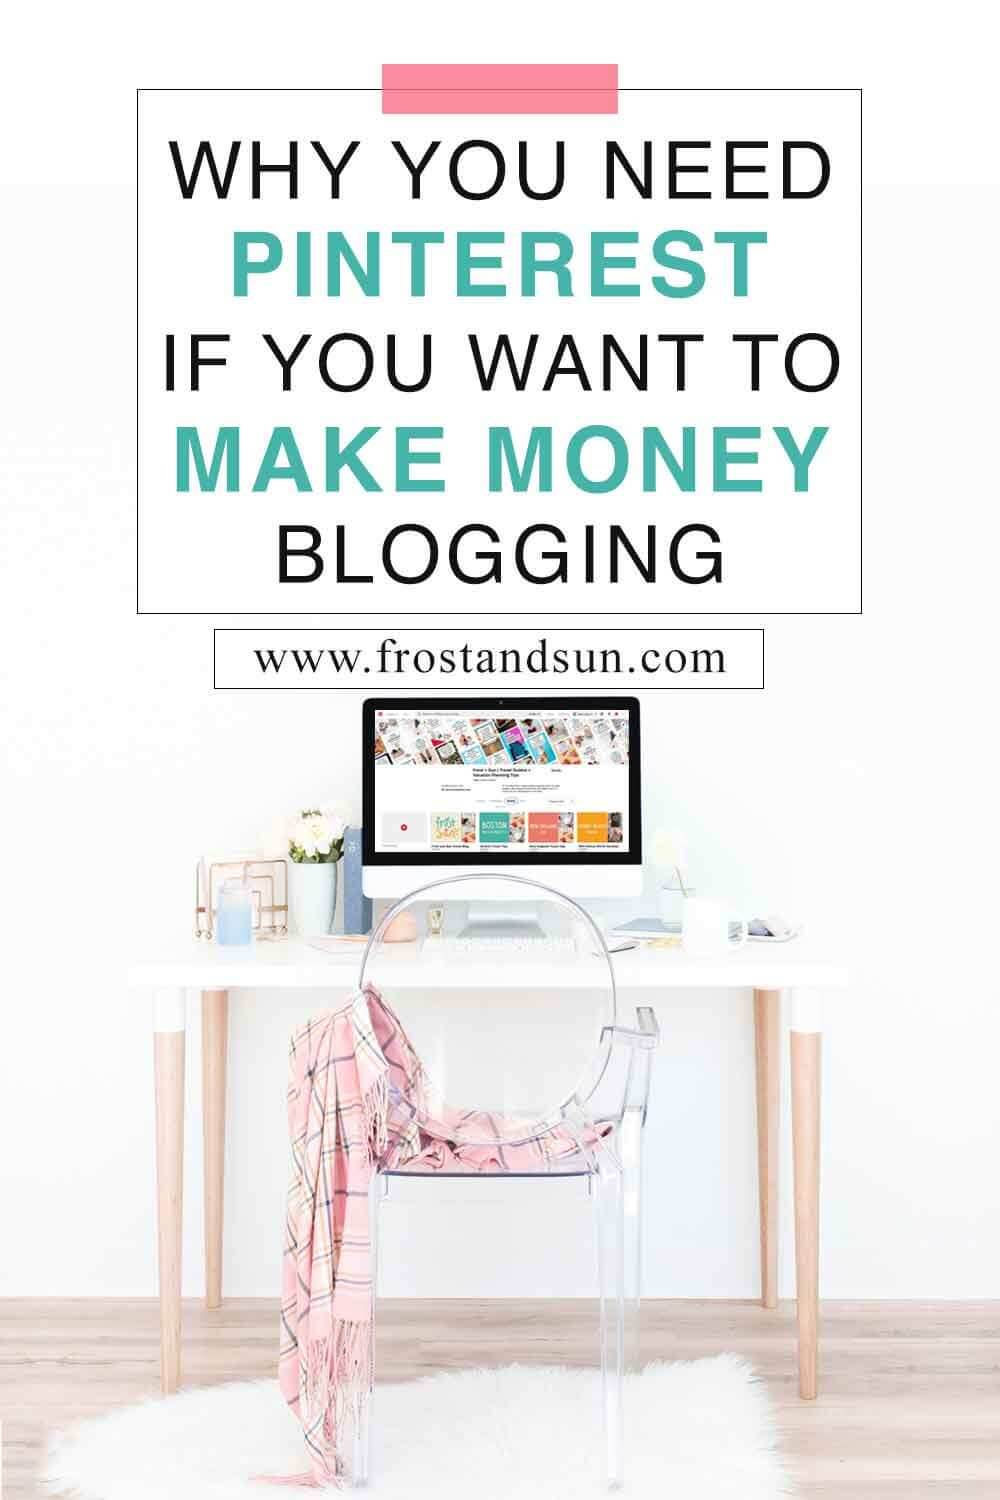 4 Ways Pinterest Can Help You Make Money Blogging